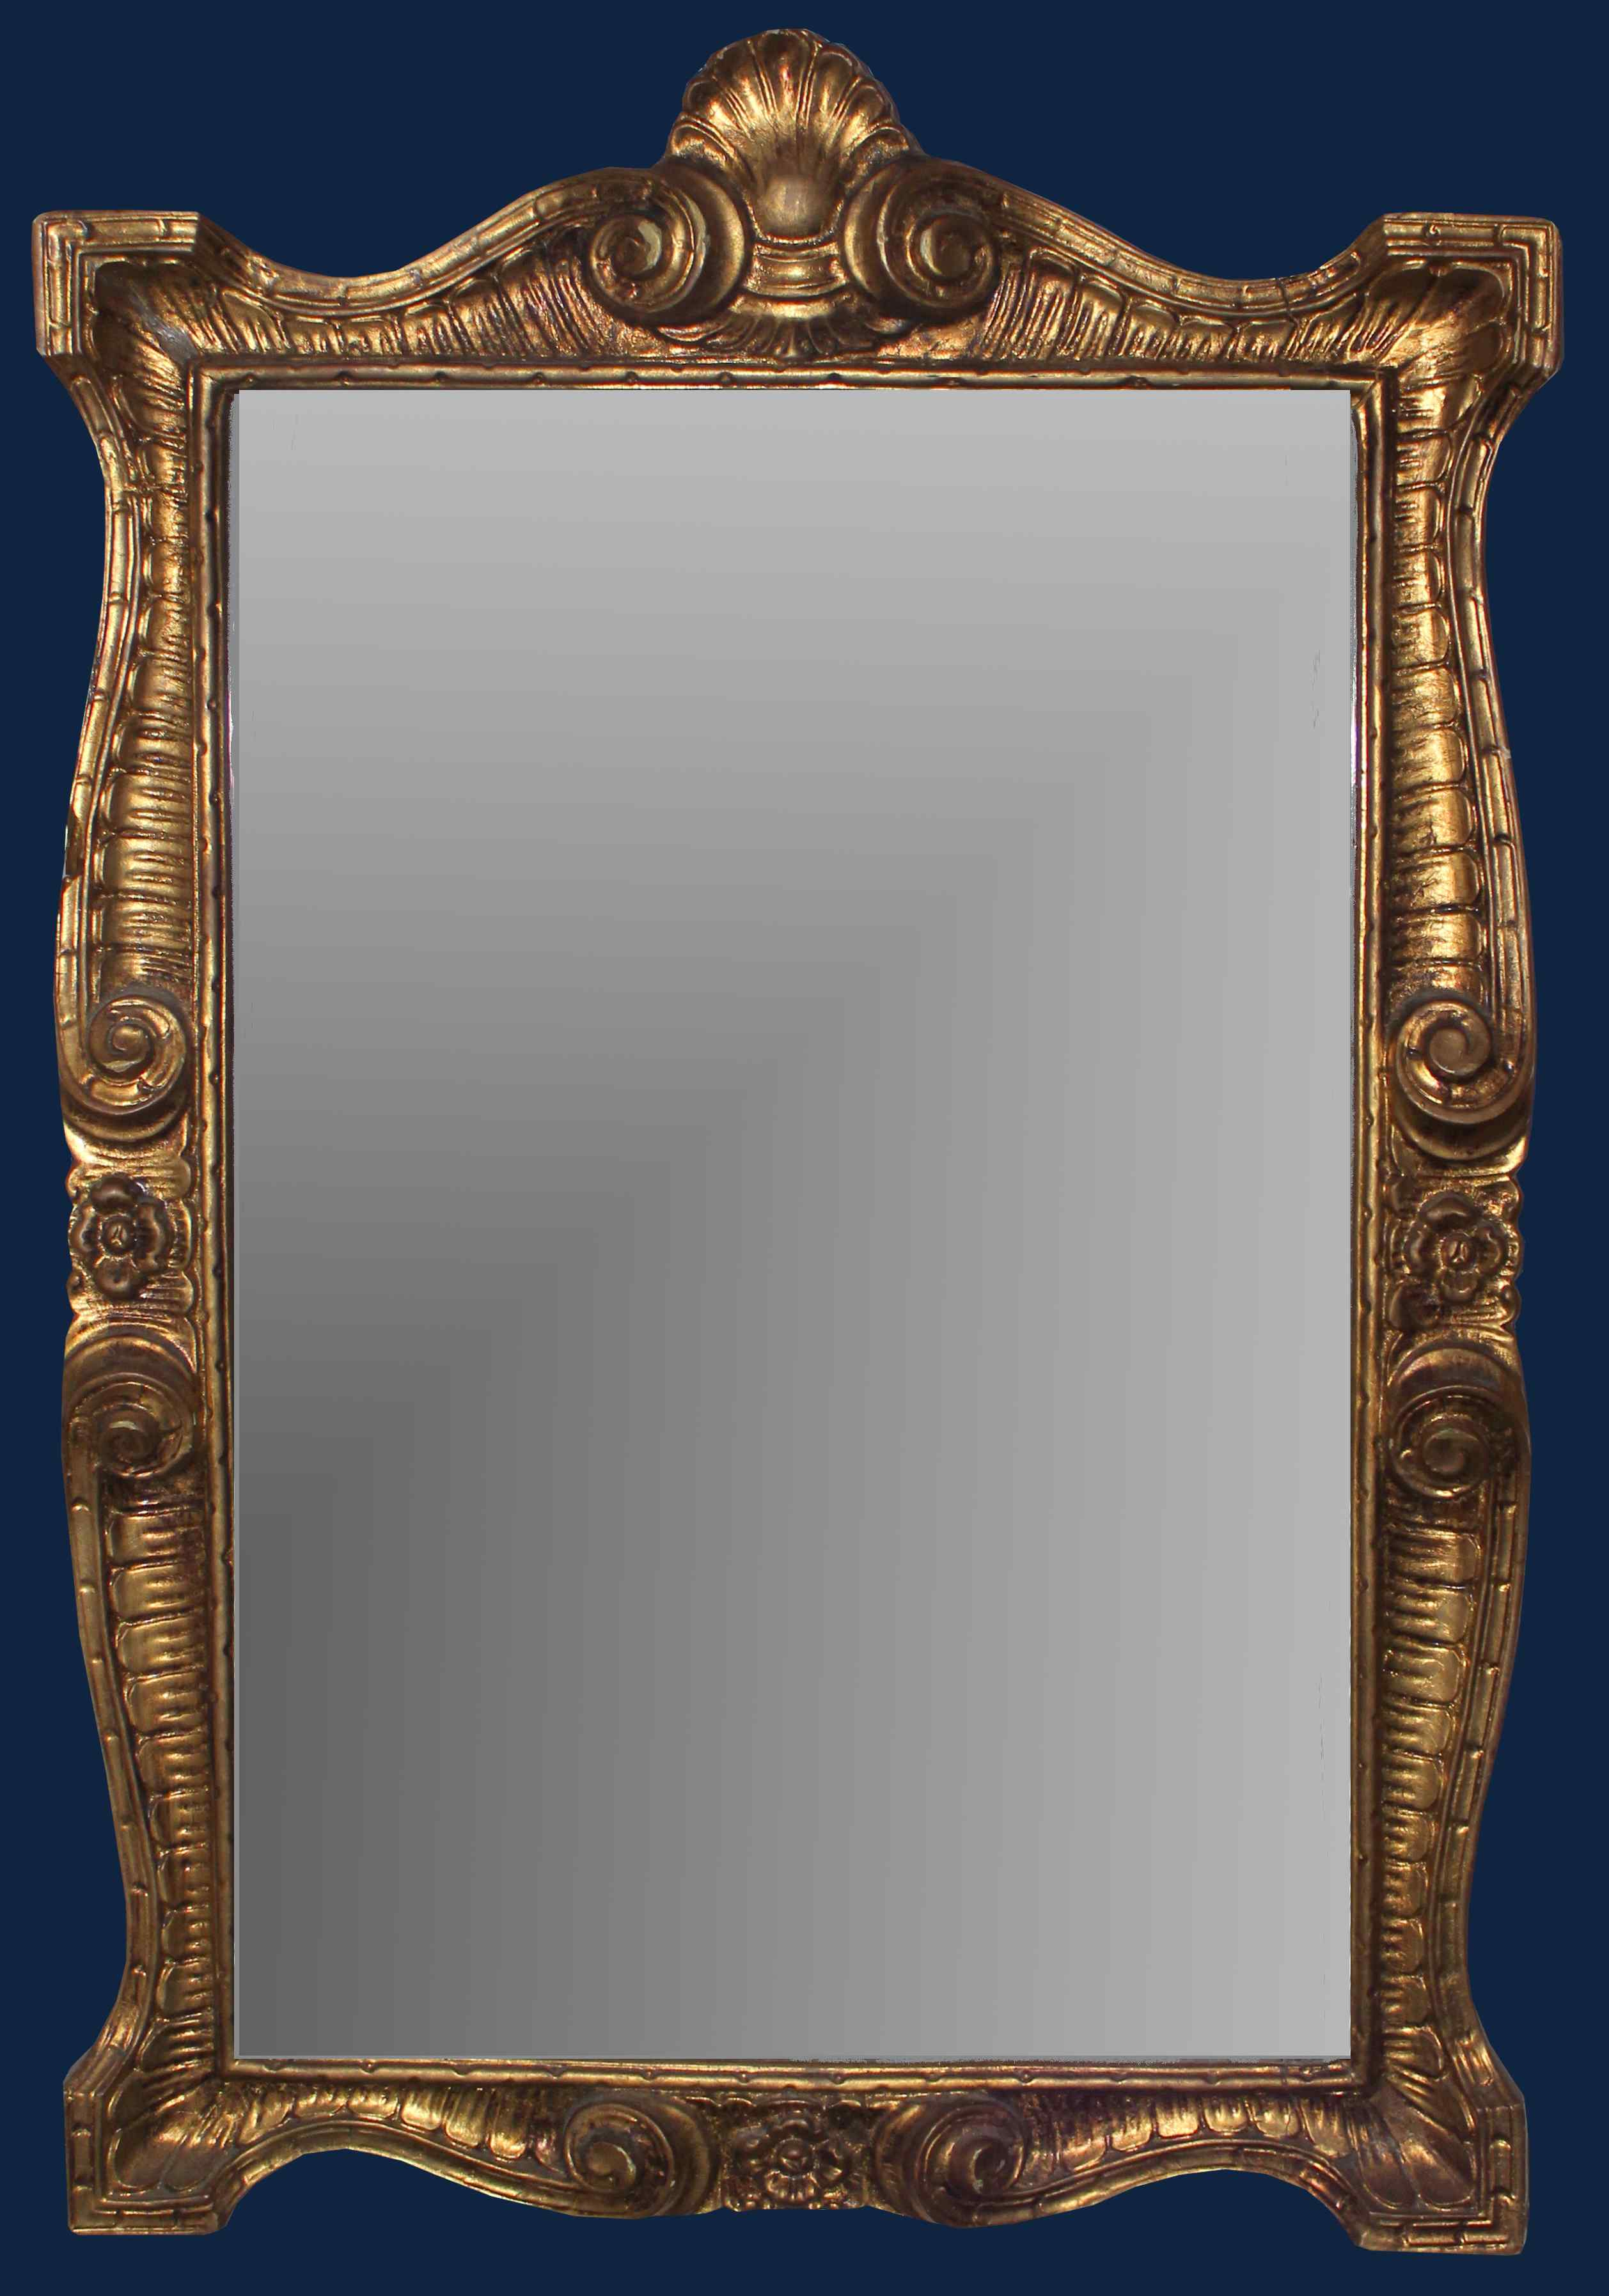 Nineteenth century, Mirror, wood carved and gilded